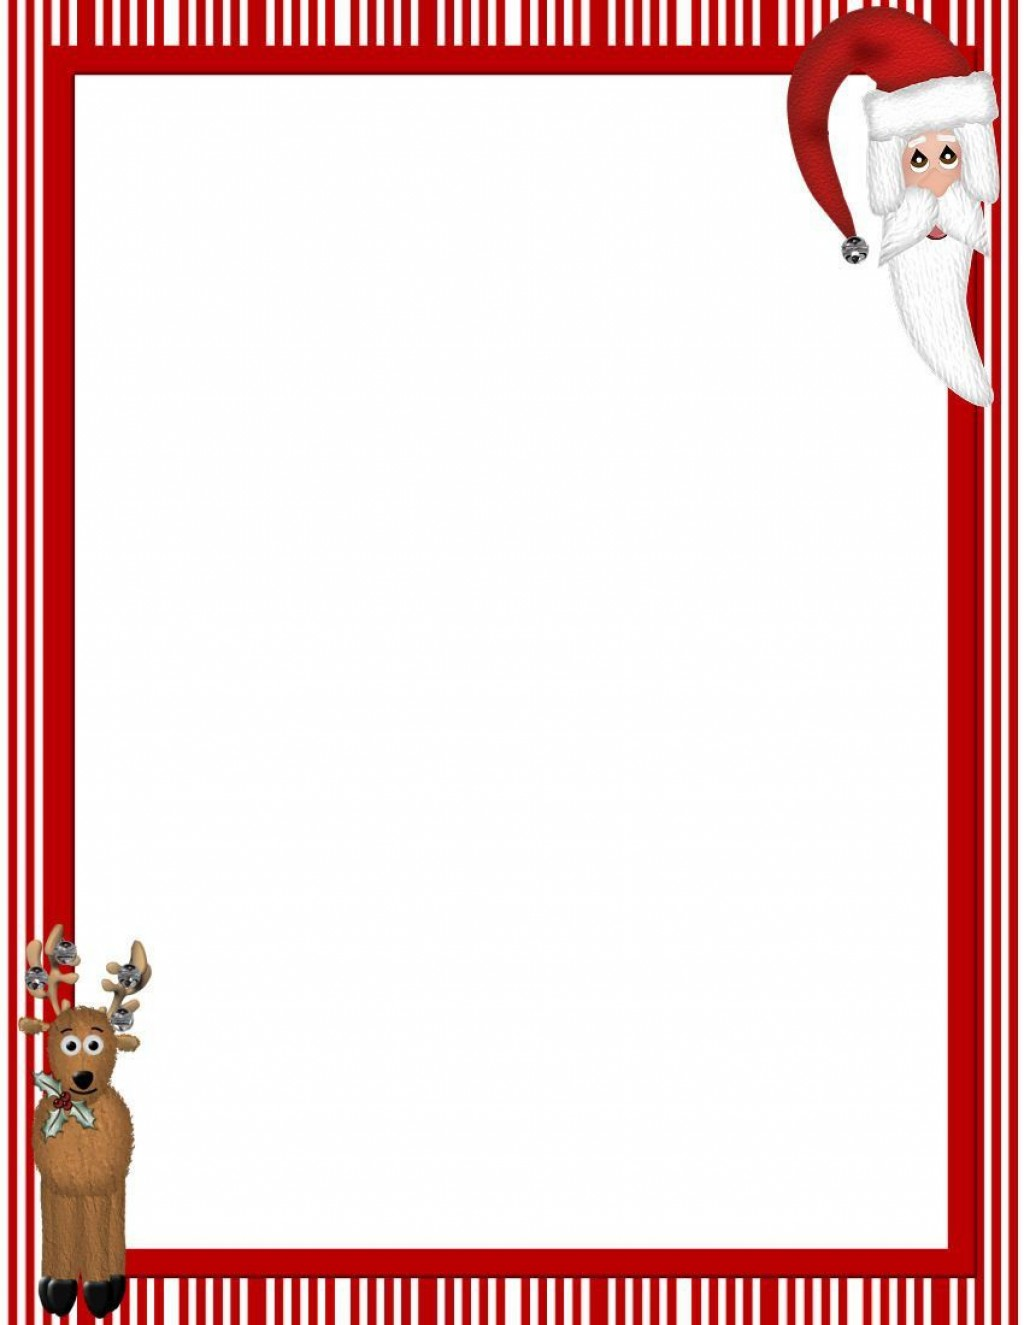 007 Excellent Christma Stationery Template Word Free High Resolution  Religiou For DownloadableLarge